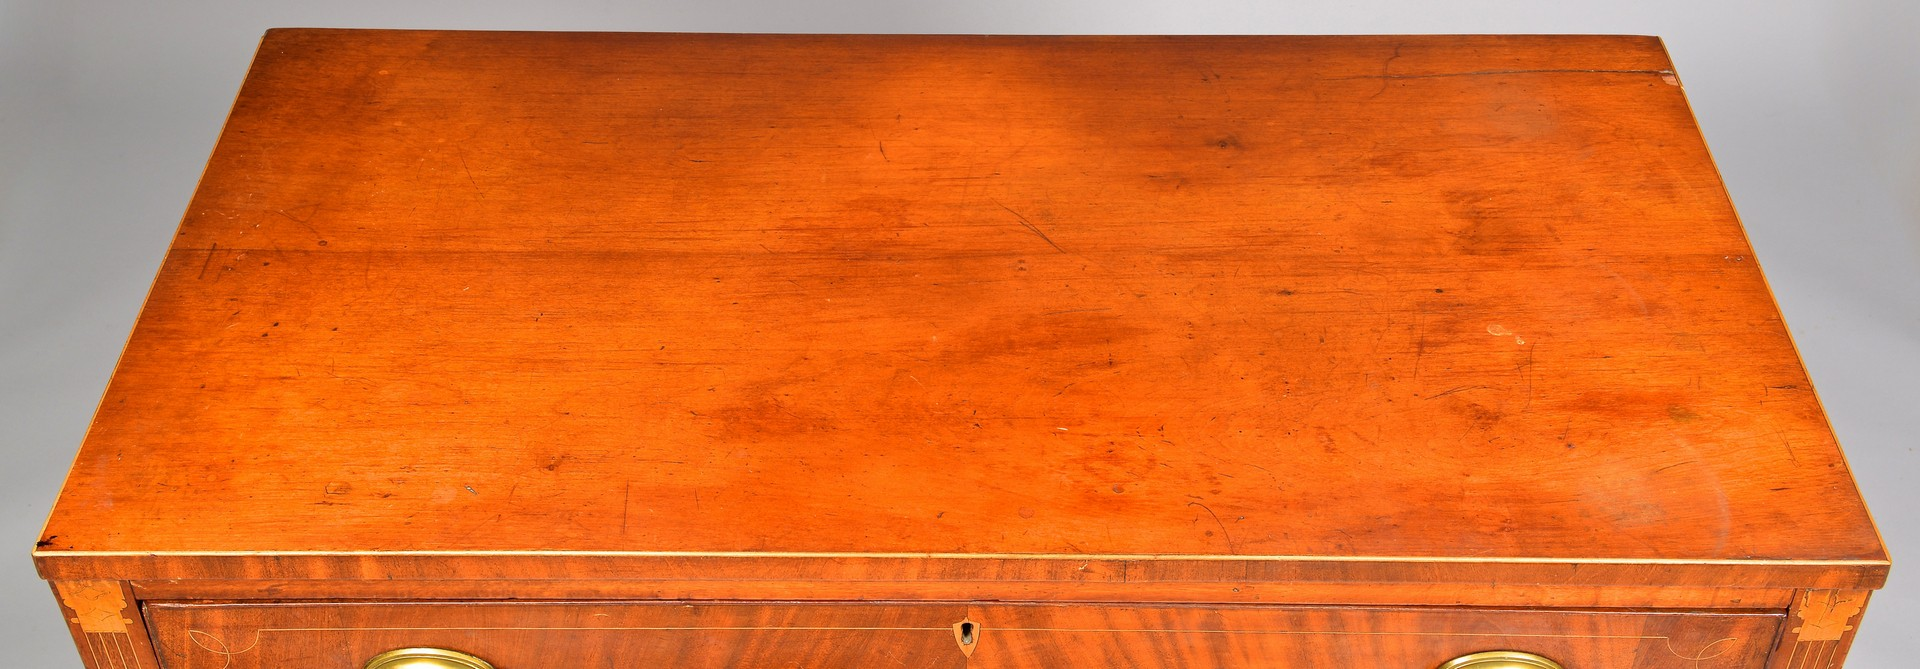 Lot 133: East TN Federal Inlaid Chest of Drawers